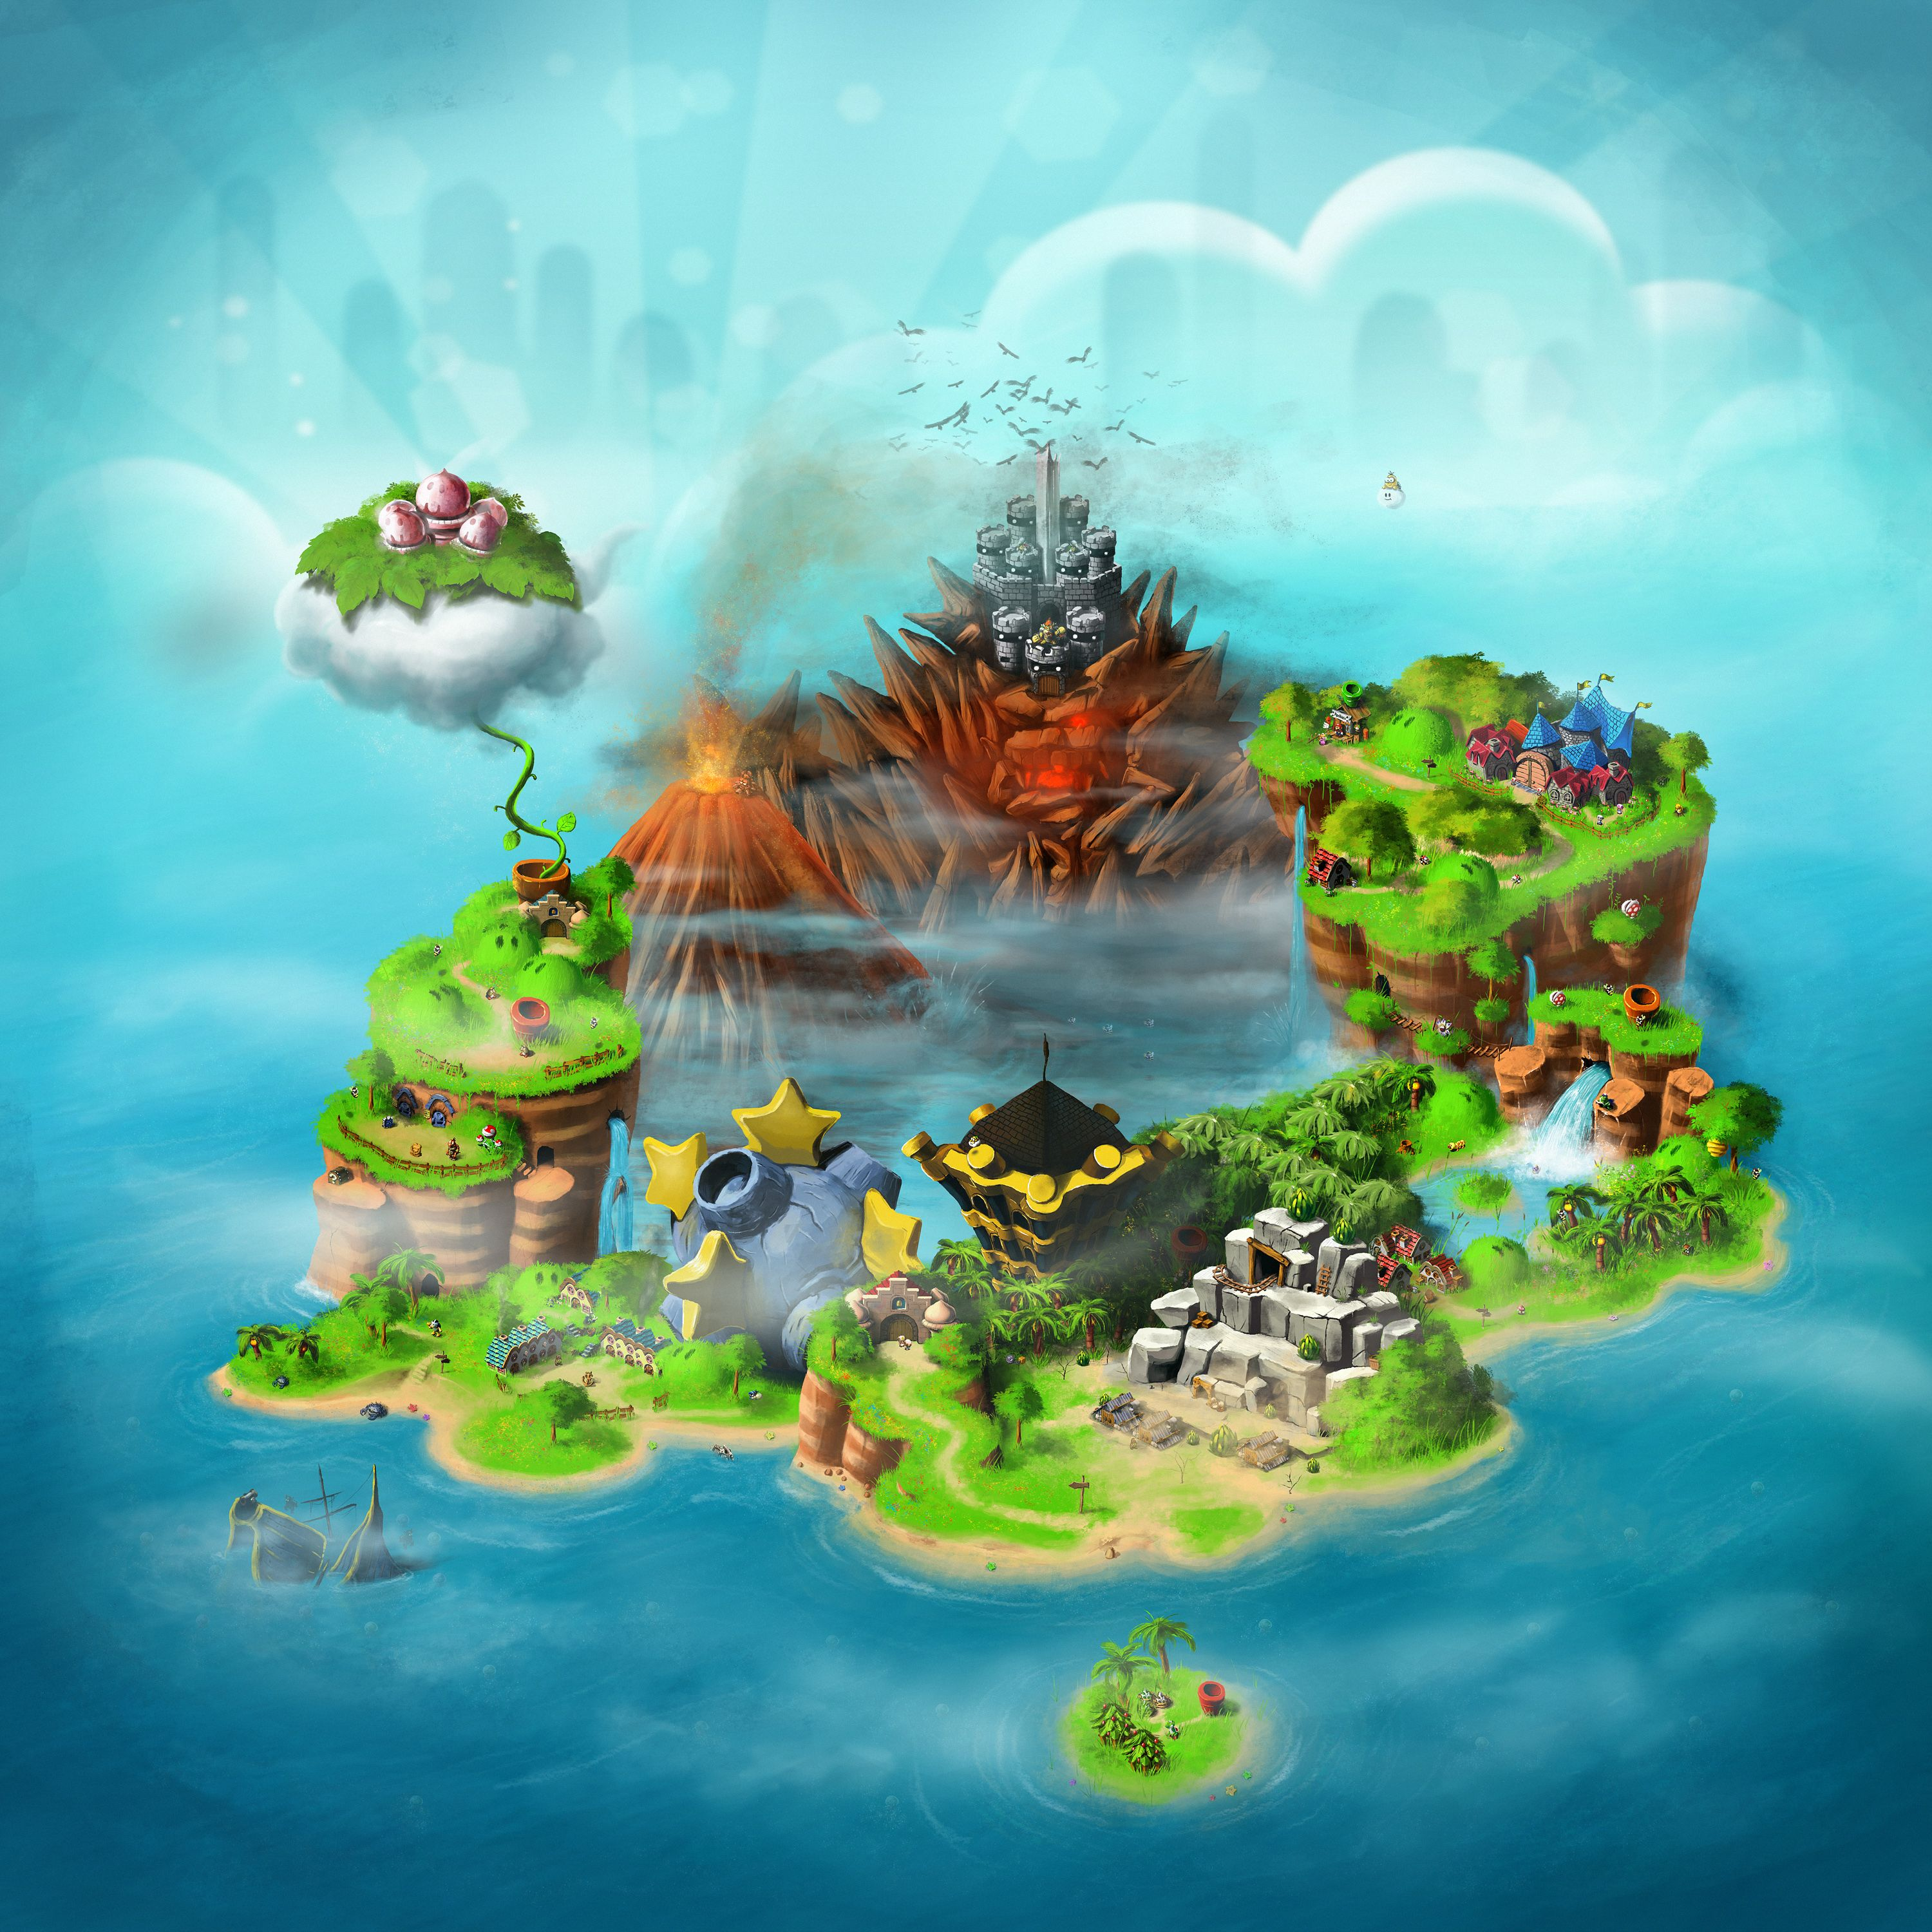 Super mario rpg world map in hd super mario rpg world map super mario rpg world map in hd super mario rpg world map wallpaper lold gumiabroncs Image collections